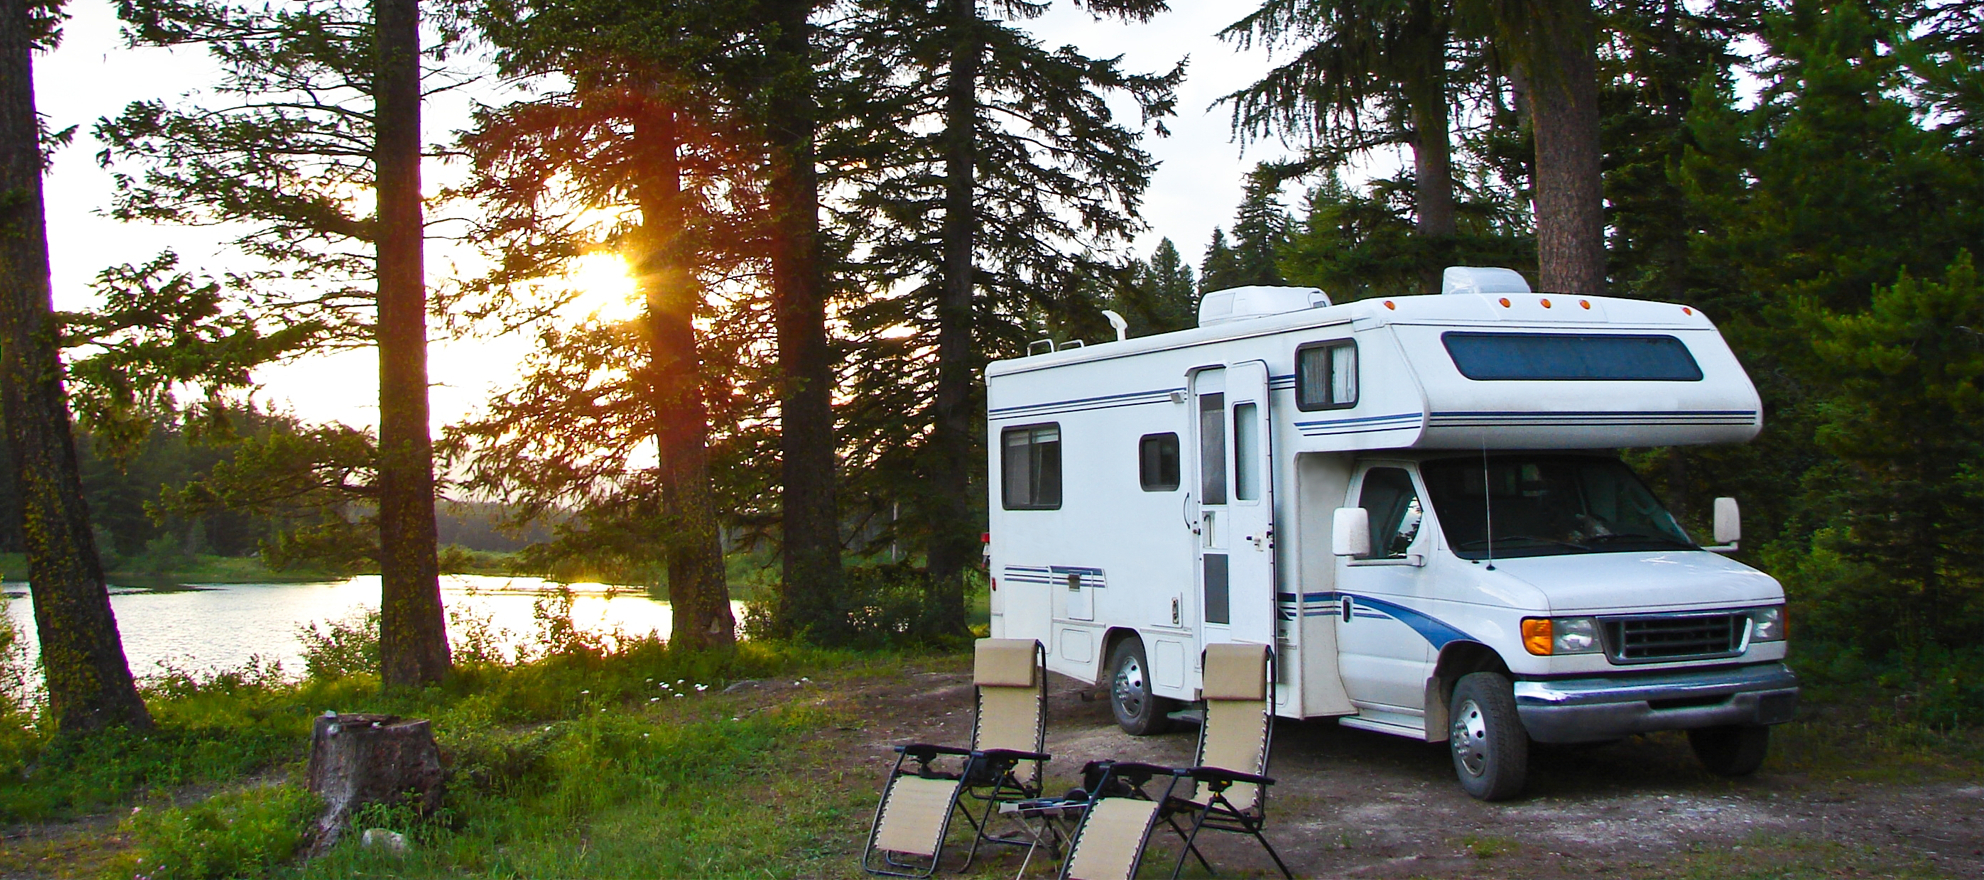 6 lessons learned by going mobile on an epic real estate road trip